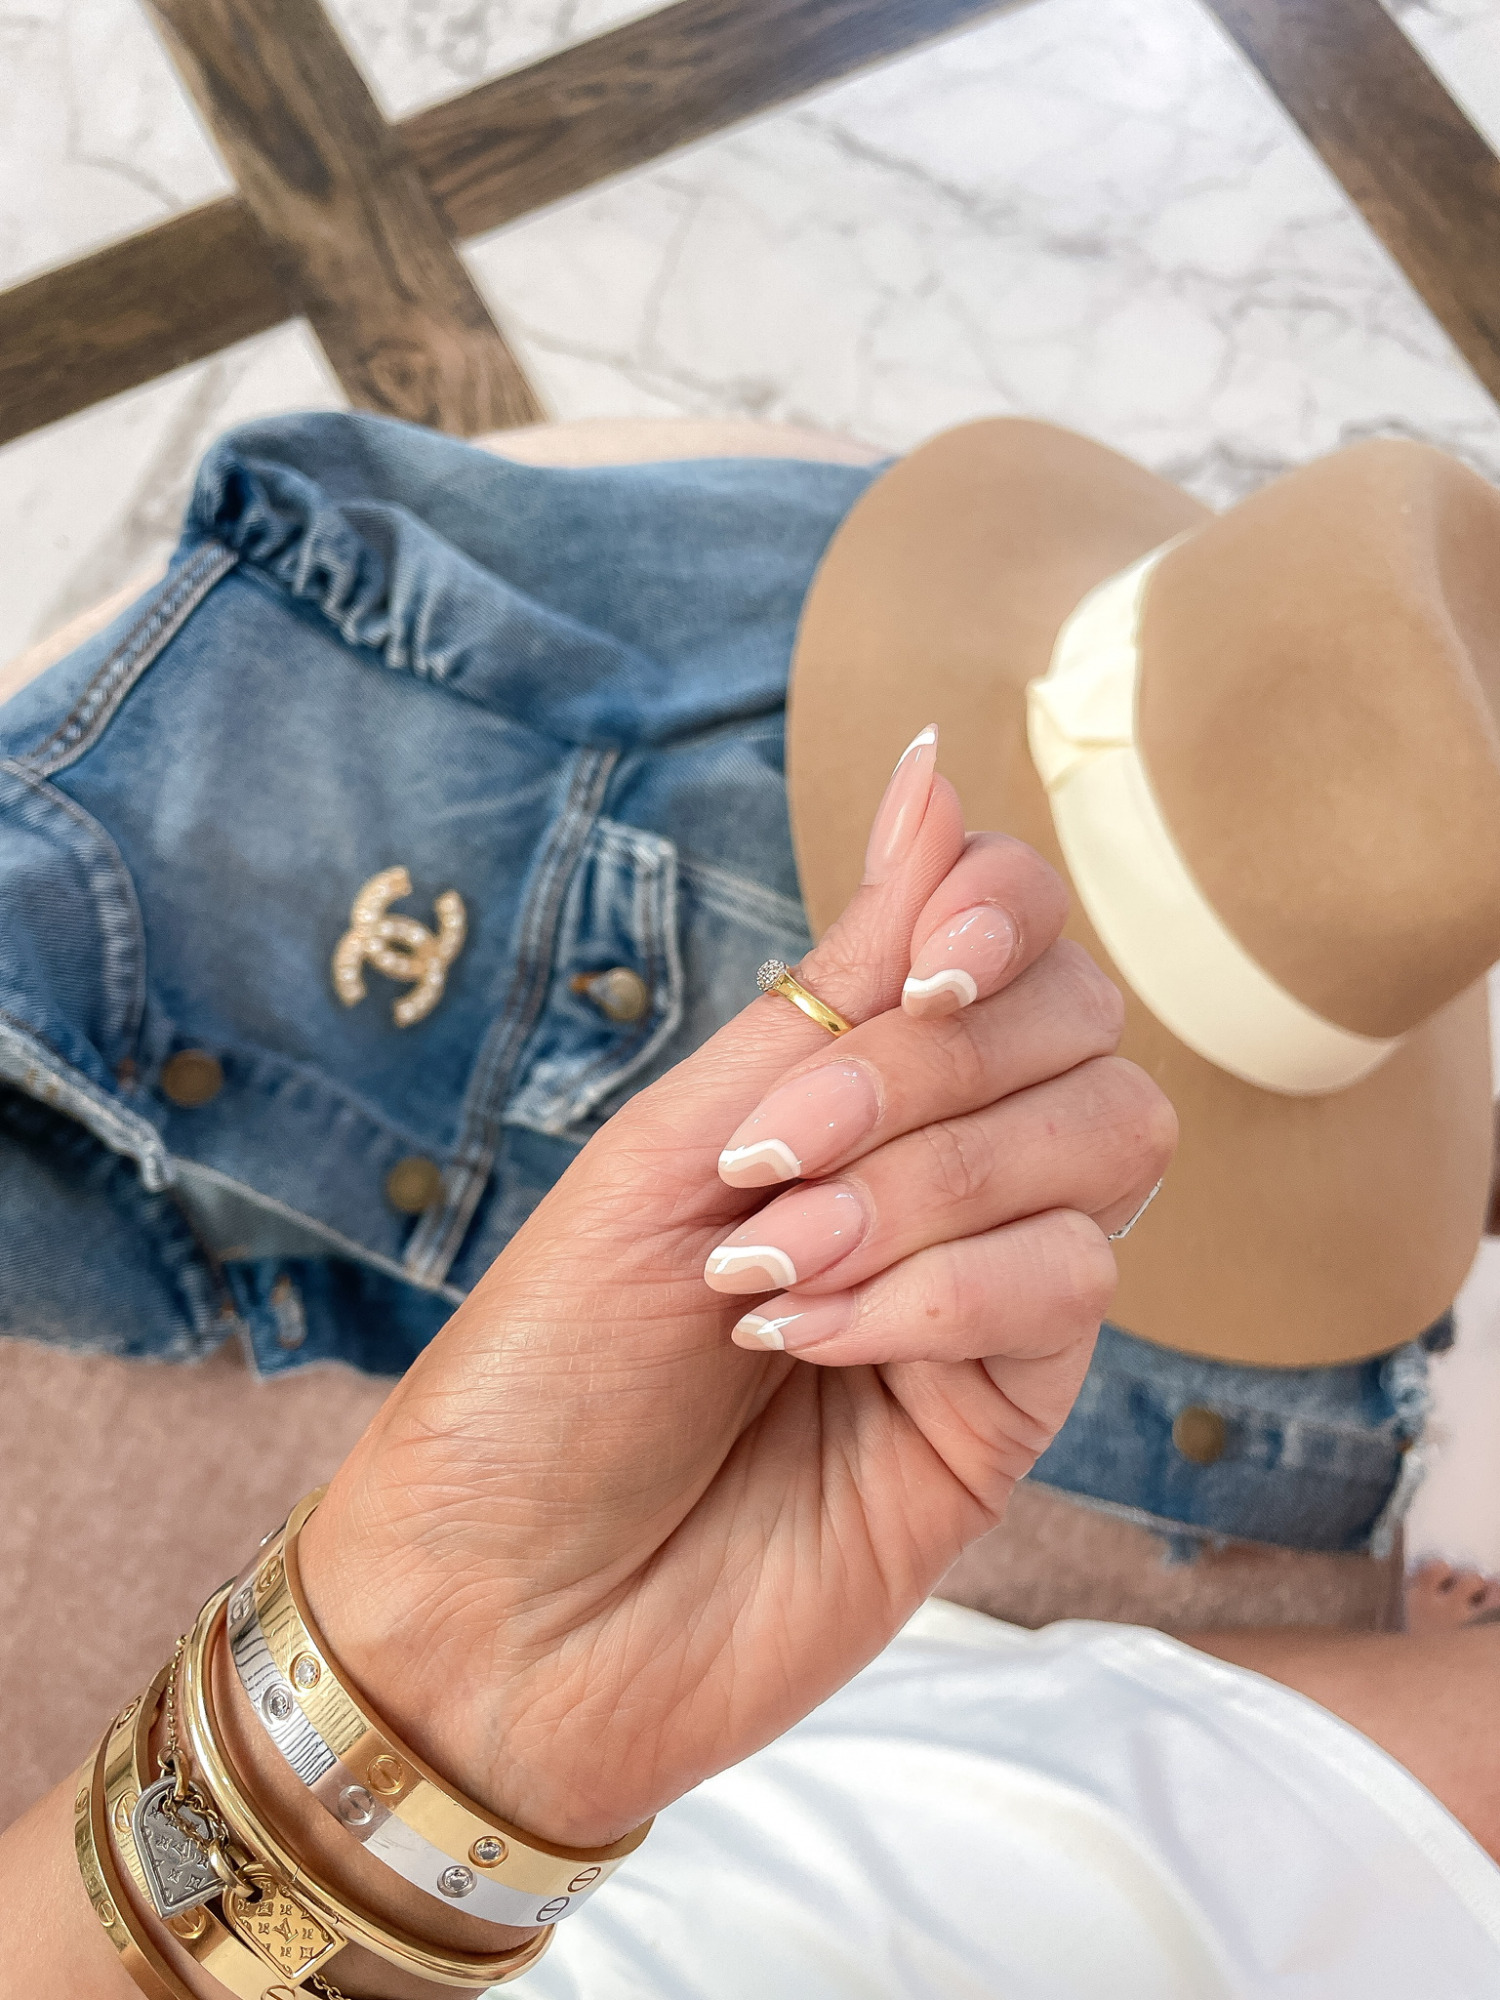 Emily ann gemma, emily gemma nail inspiration, nude nails, nude nail designs, fall nail designs 2021, cartier bracelet stack, denim jacket, chanel brooch, wool hat   Instagram Recap by popular US life and style blog, The Sweetest Thing: image of Emily Gemma with a nude abstract design manicure.